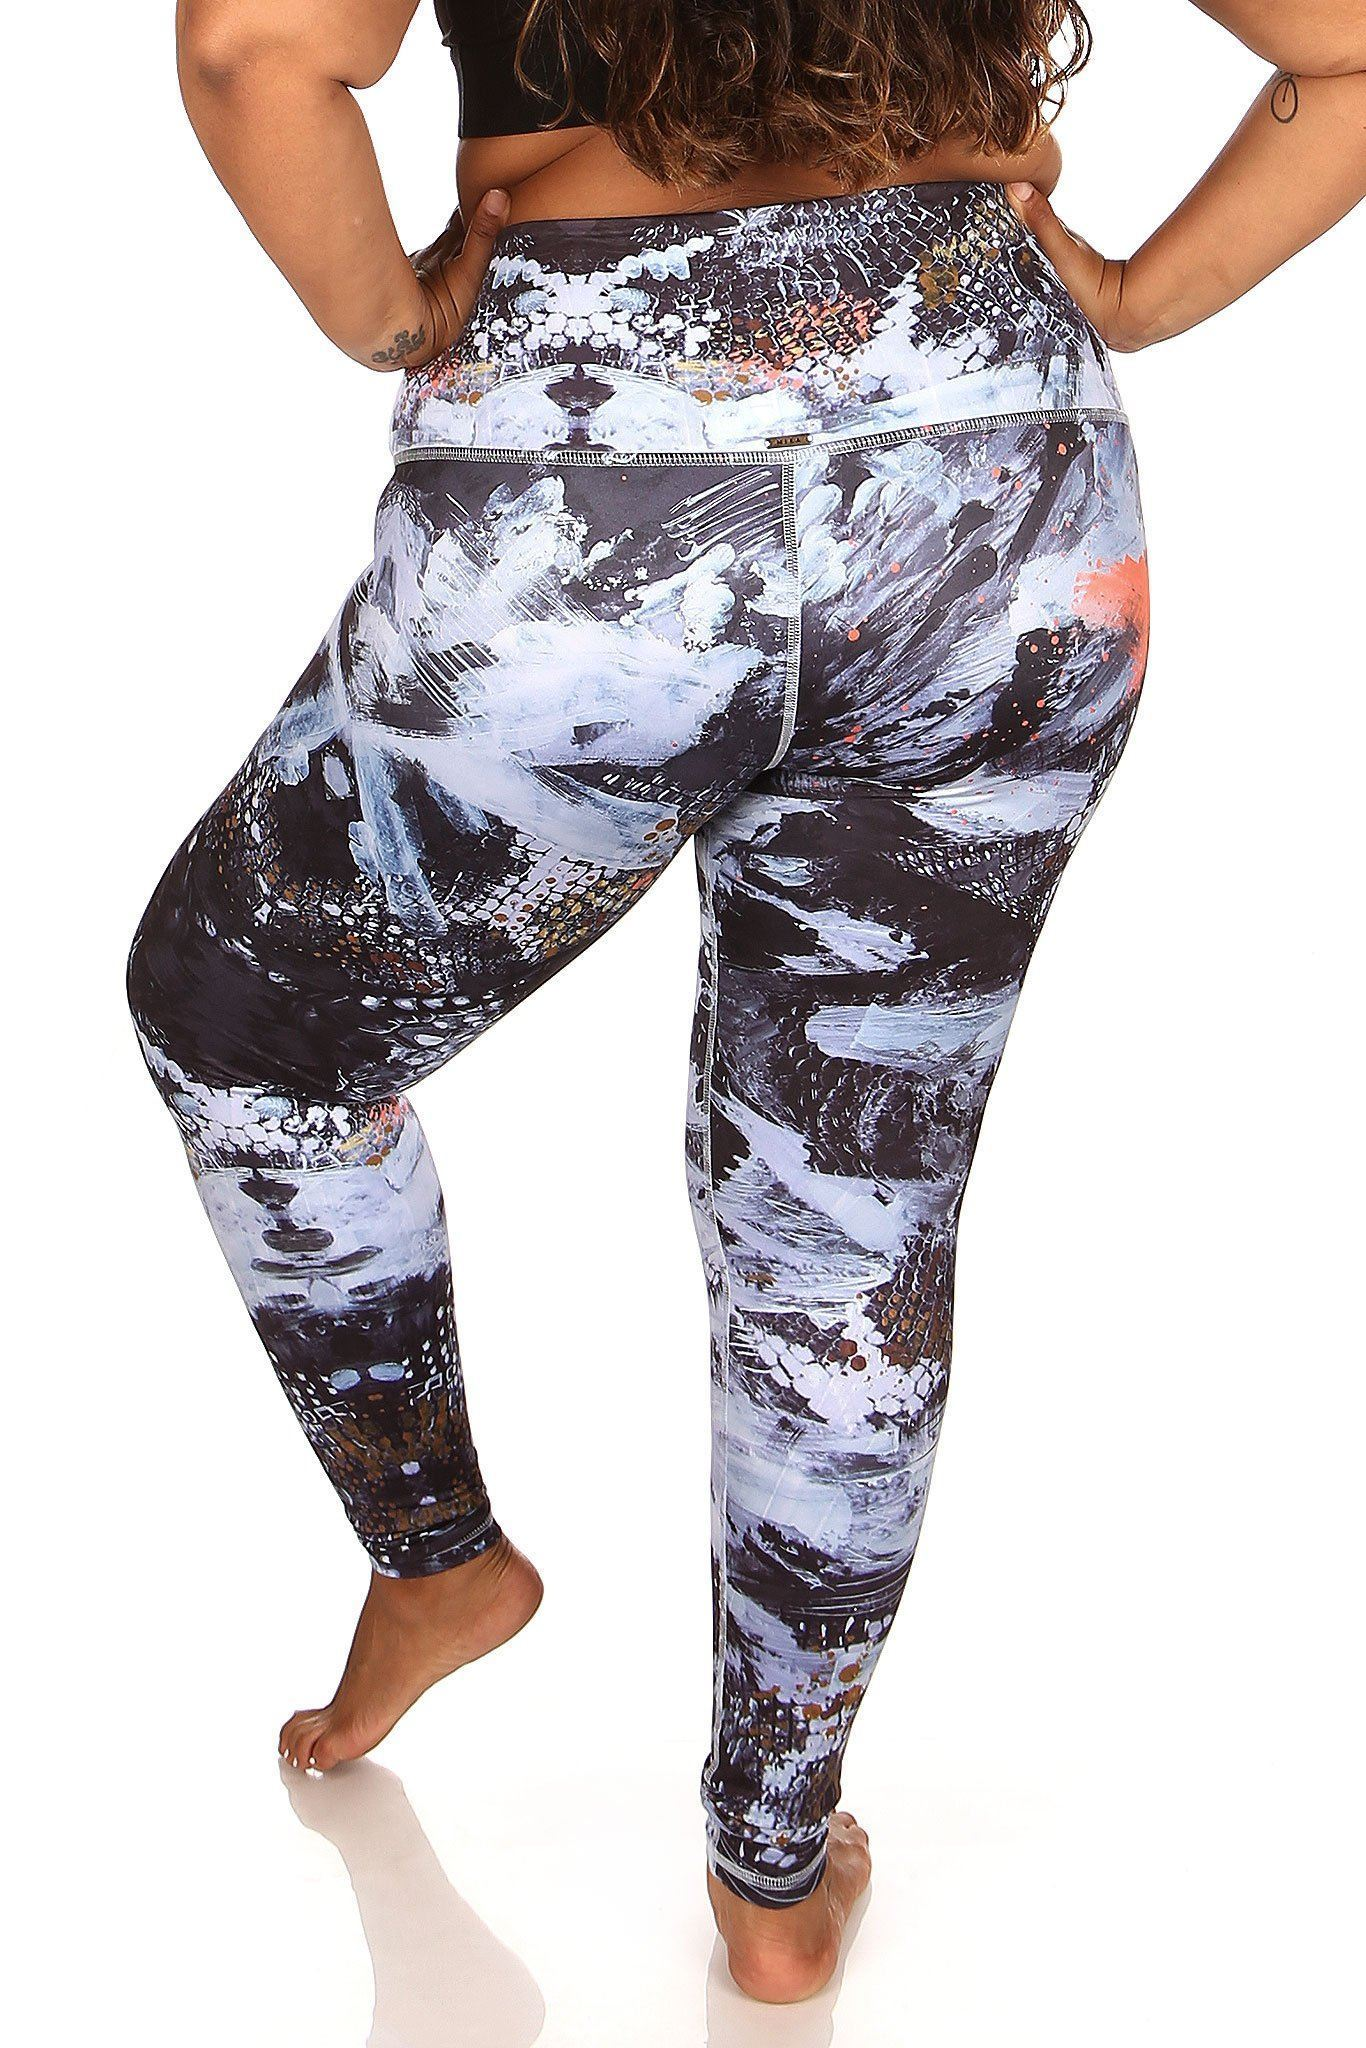 Kaya Legging - High Waisted - Last Chance SALE - Leggings - Mika Yoga Wear